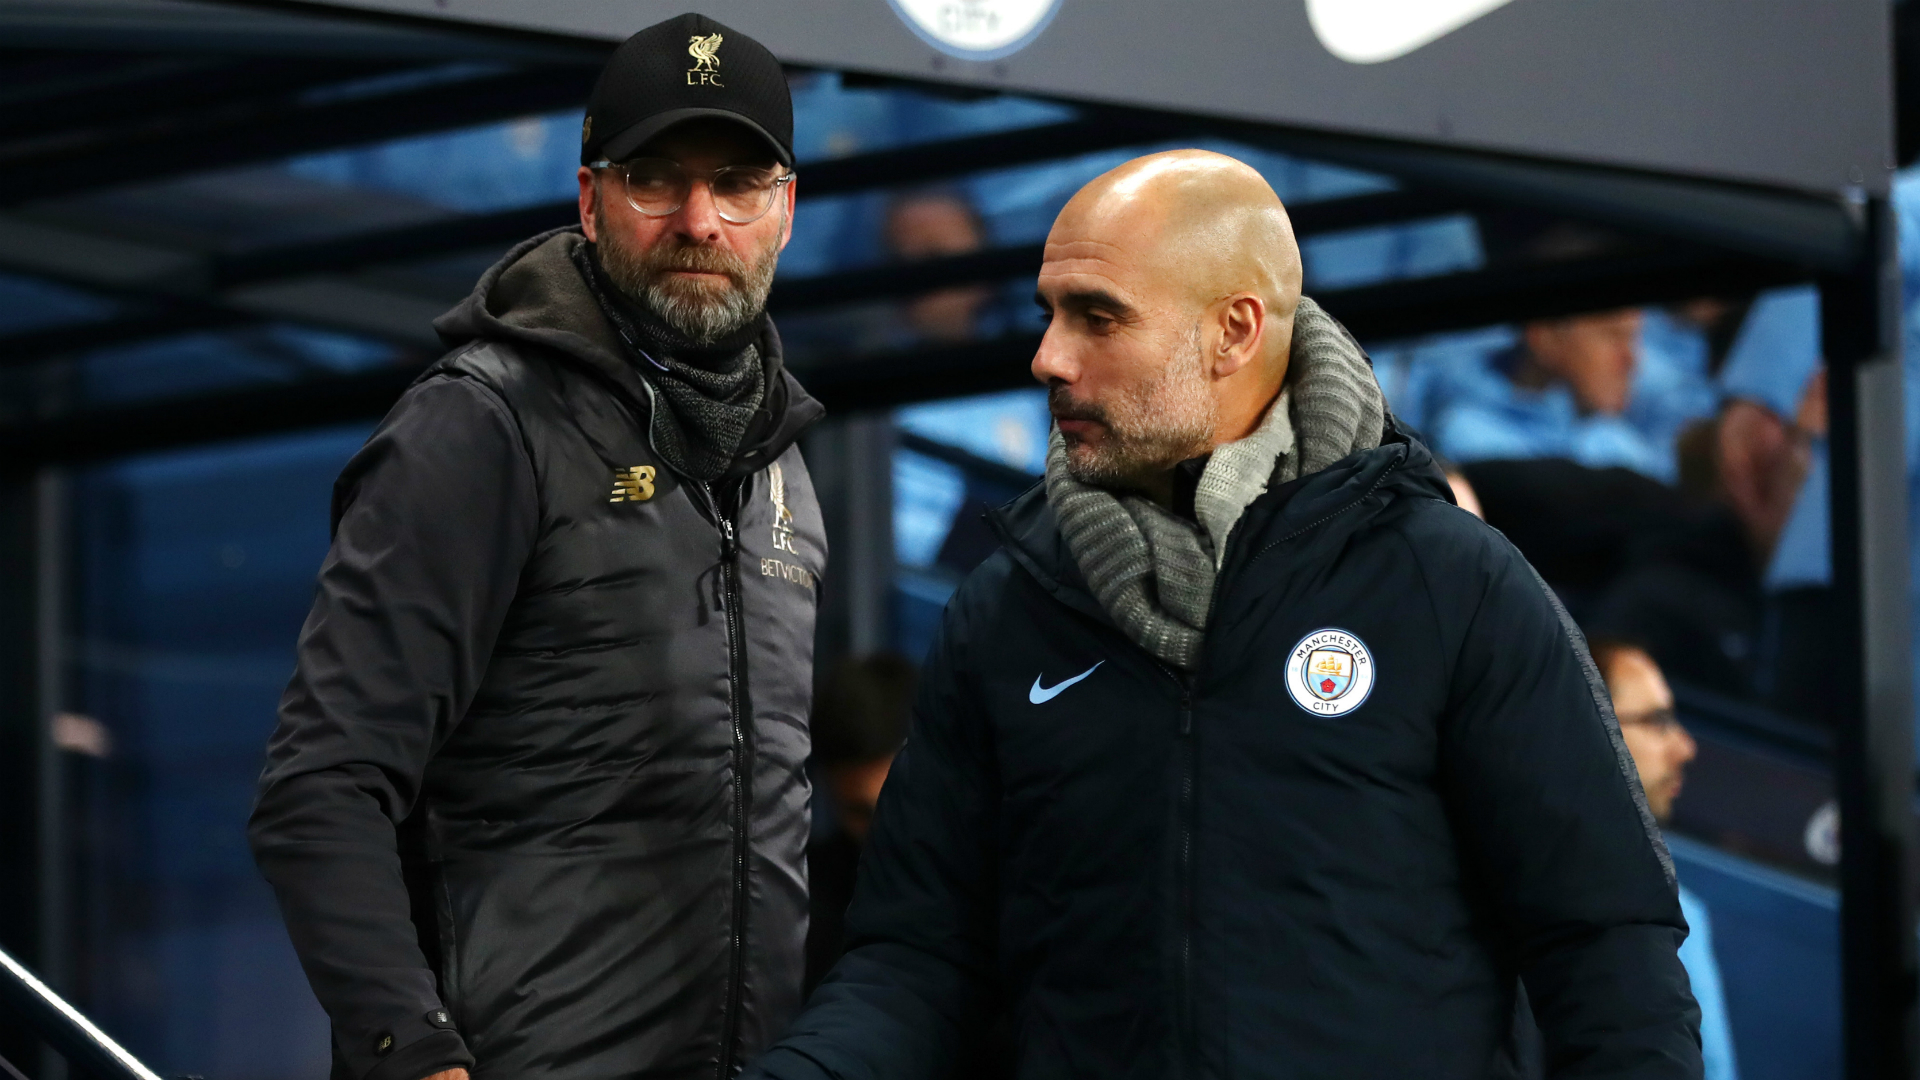 Following the announcement of the 2019-20 Premier League fixtures, we pick out key sequences for Manchester City and Liverpool.